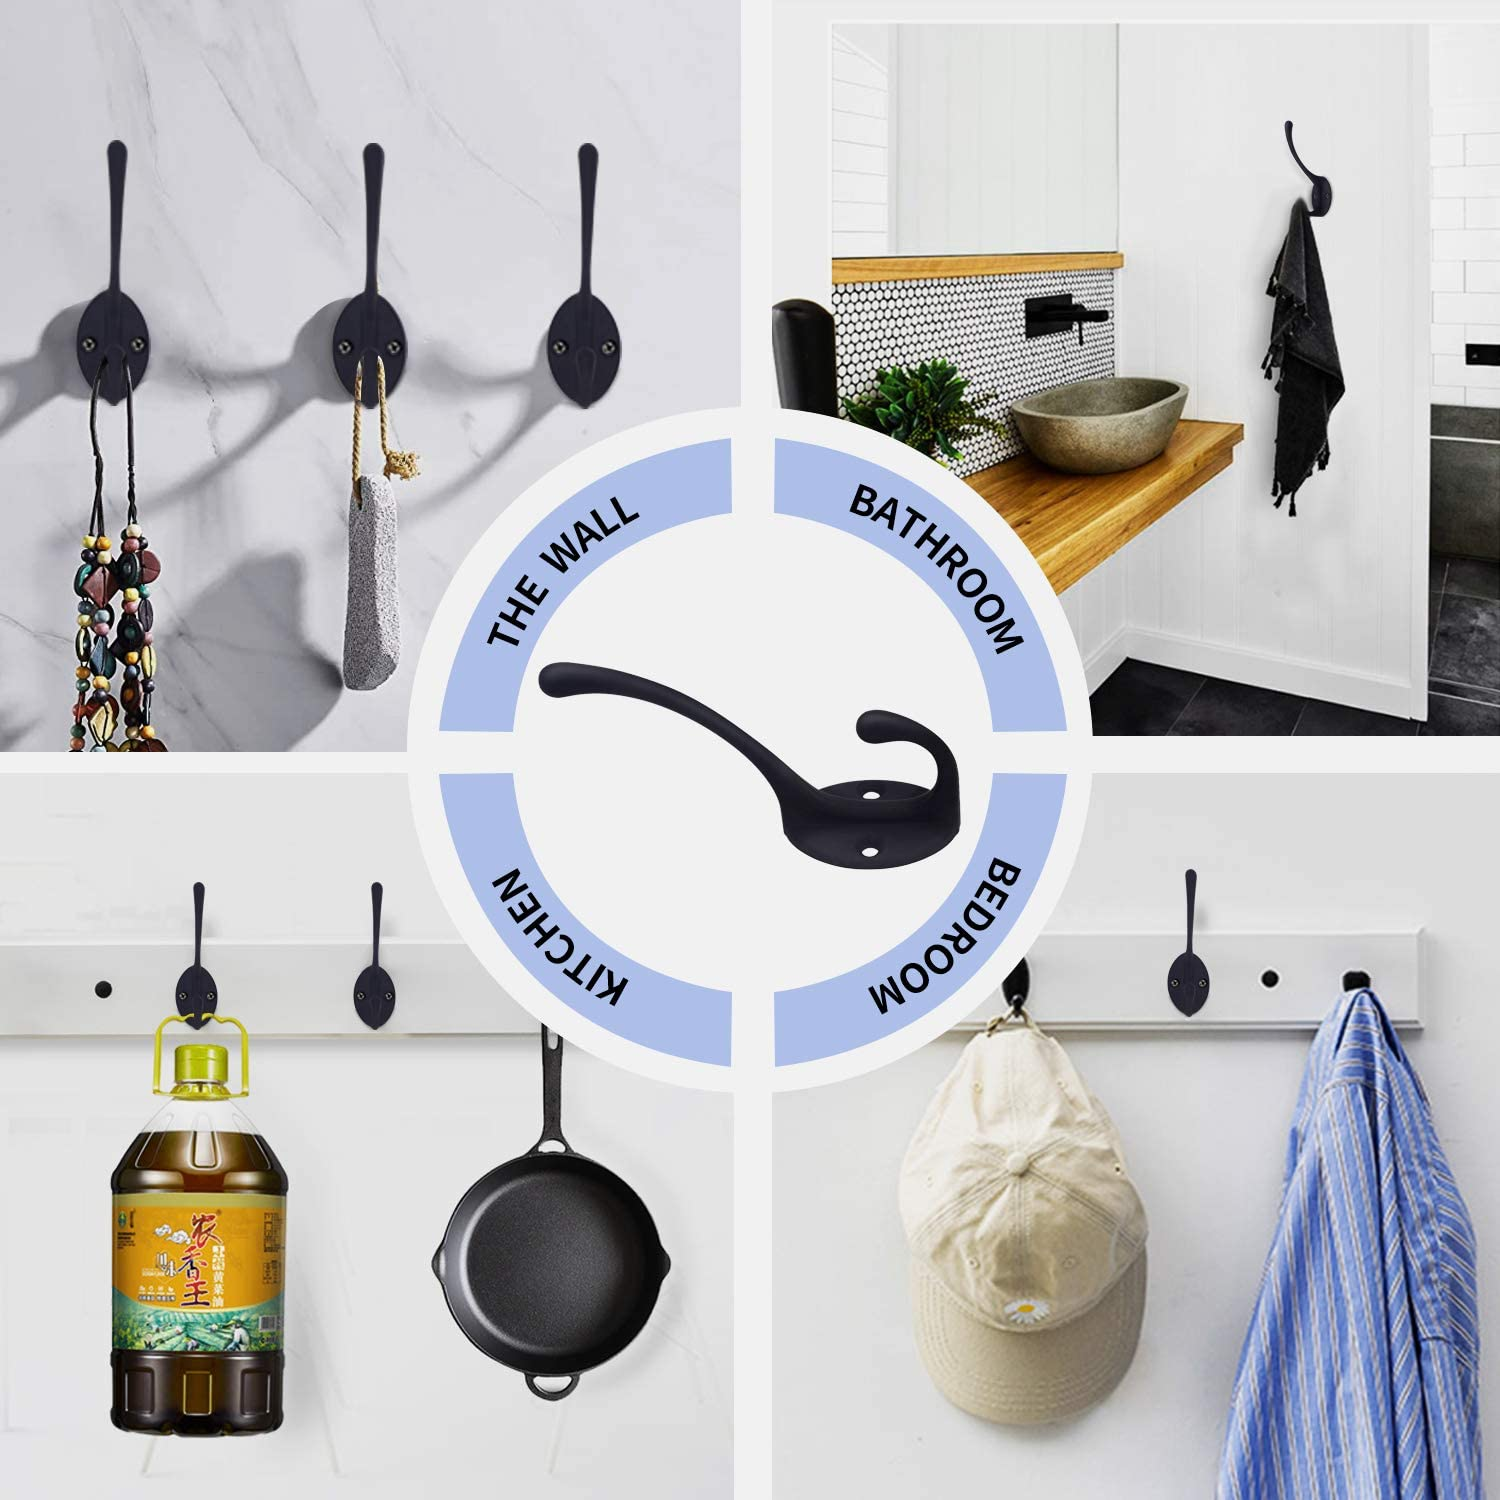 Hat and More Mug Cup Black Scarf Robe Bag Towel Include 8 Pieces Screws Cap 2 Pack Matte Black Coat Hooks Heavy Duty Dual Coat Hooks Wall Mounted Utility Black Not Rust Hooks for Coat Key